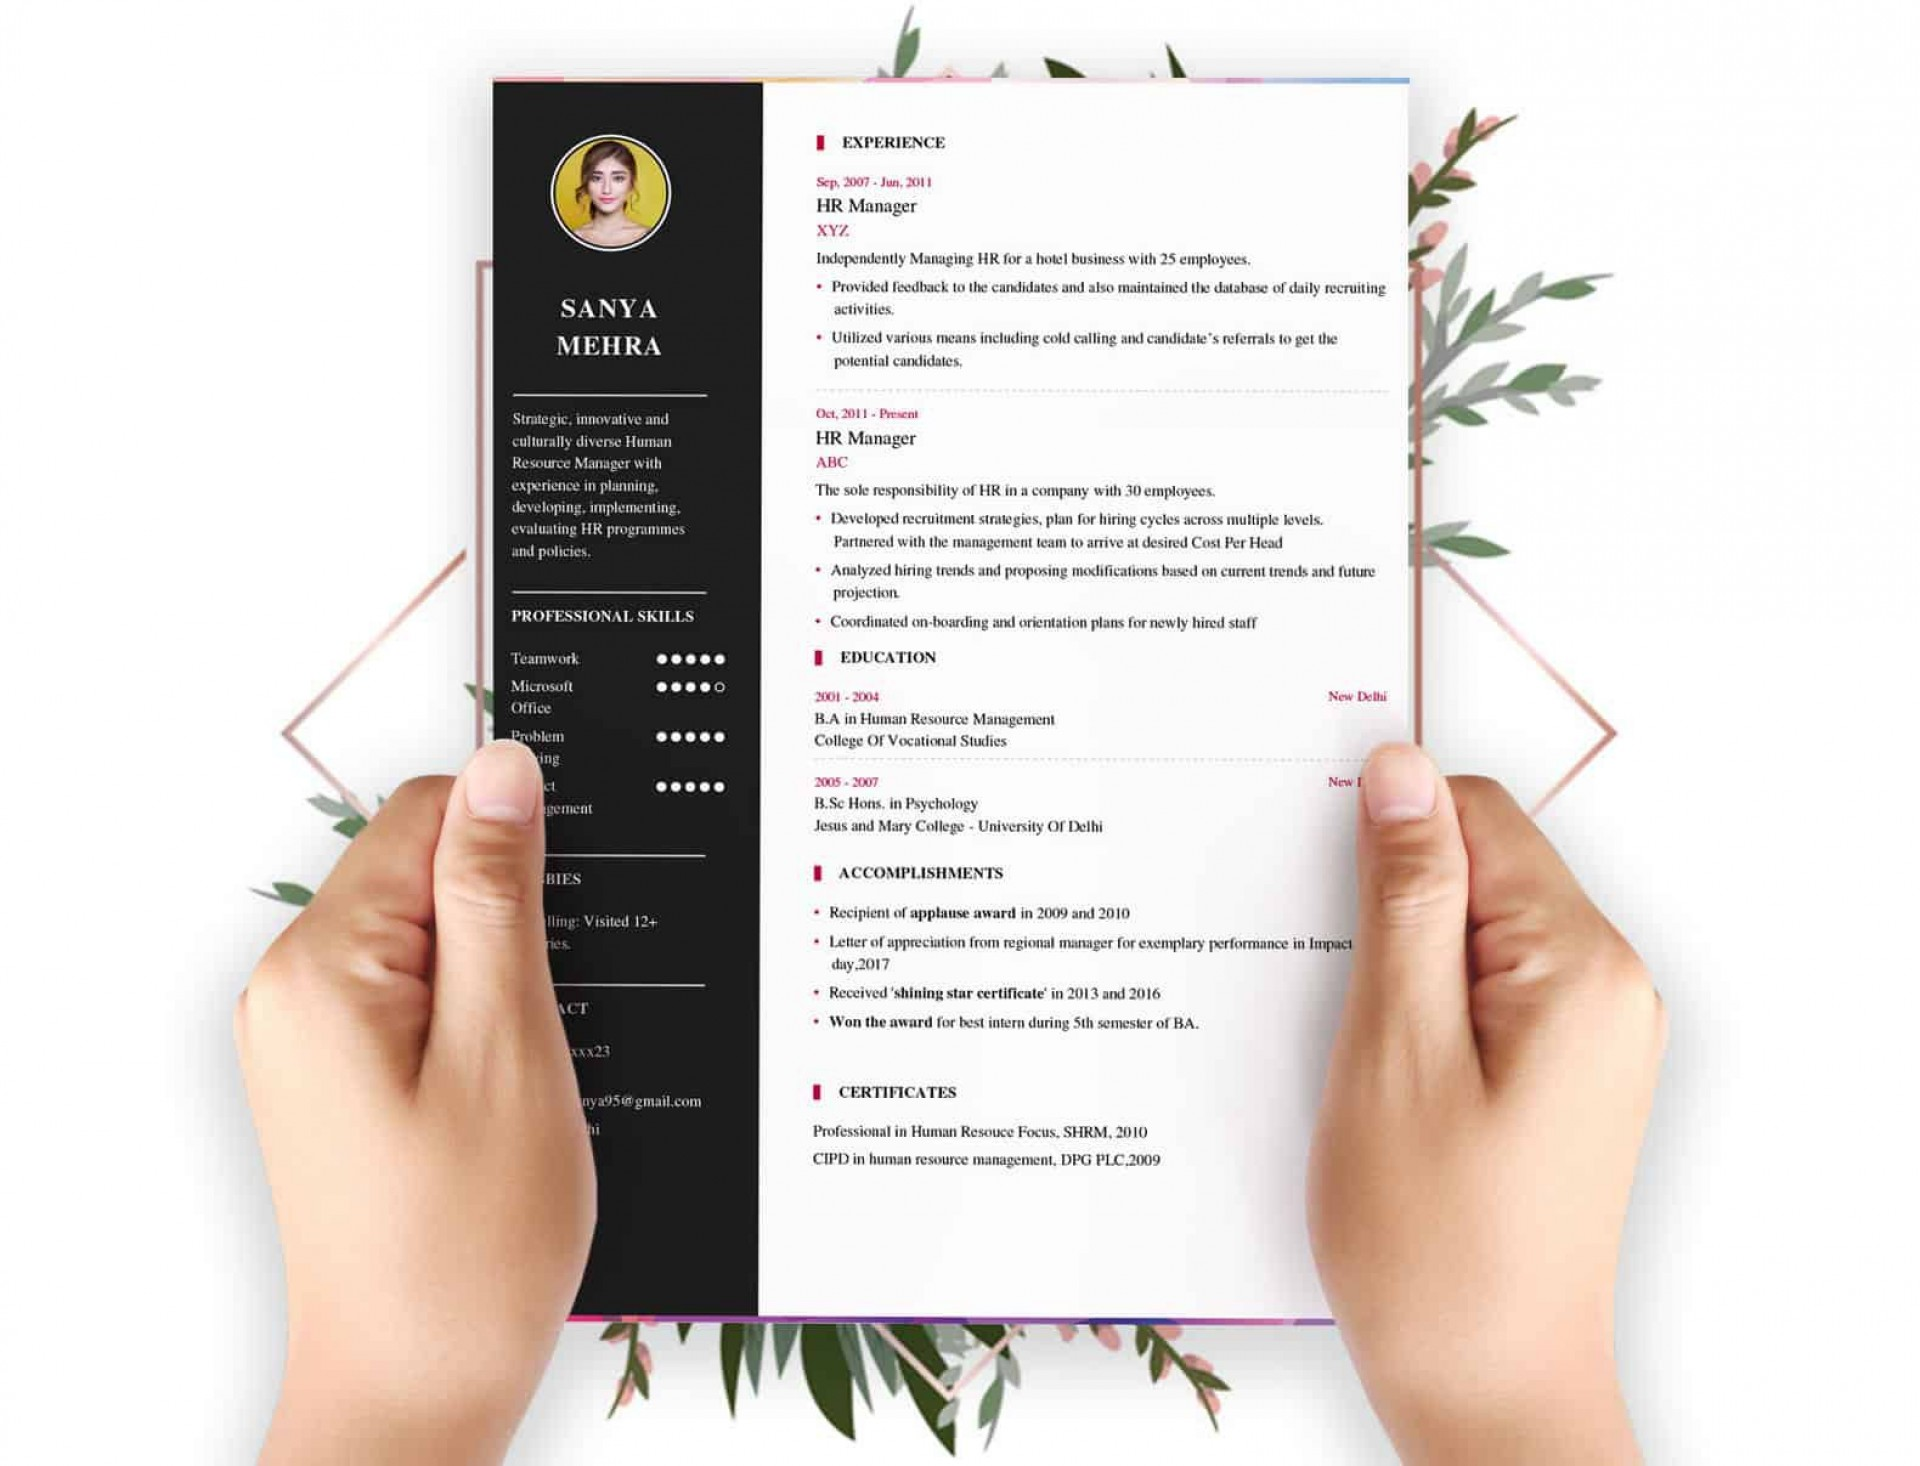 009 Wonderful Create A Resume Template Free High Resolution  Your Own Writing1920